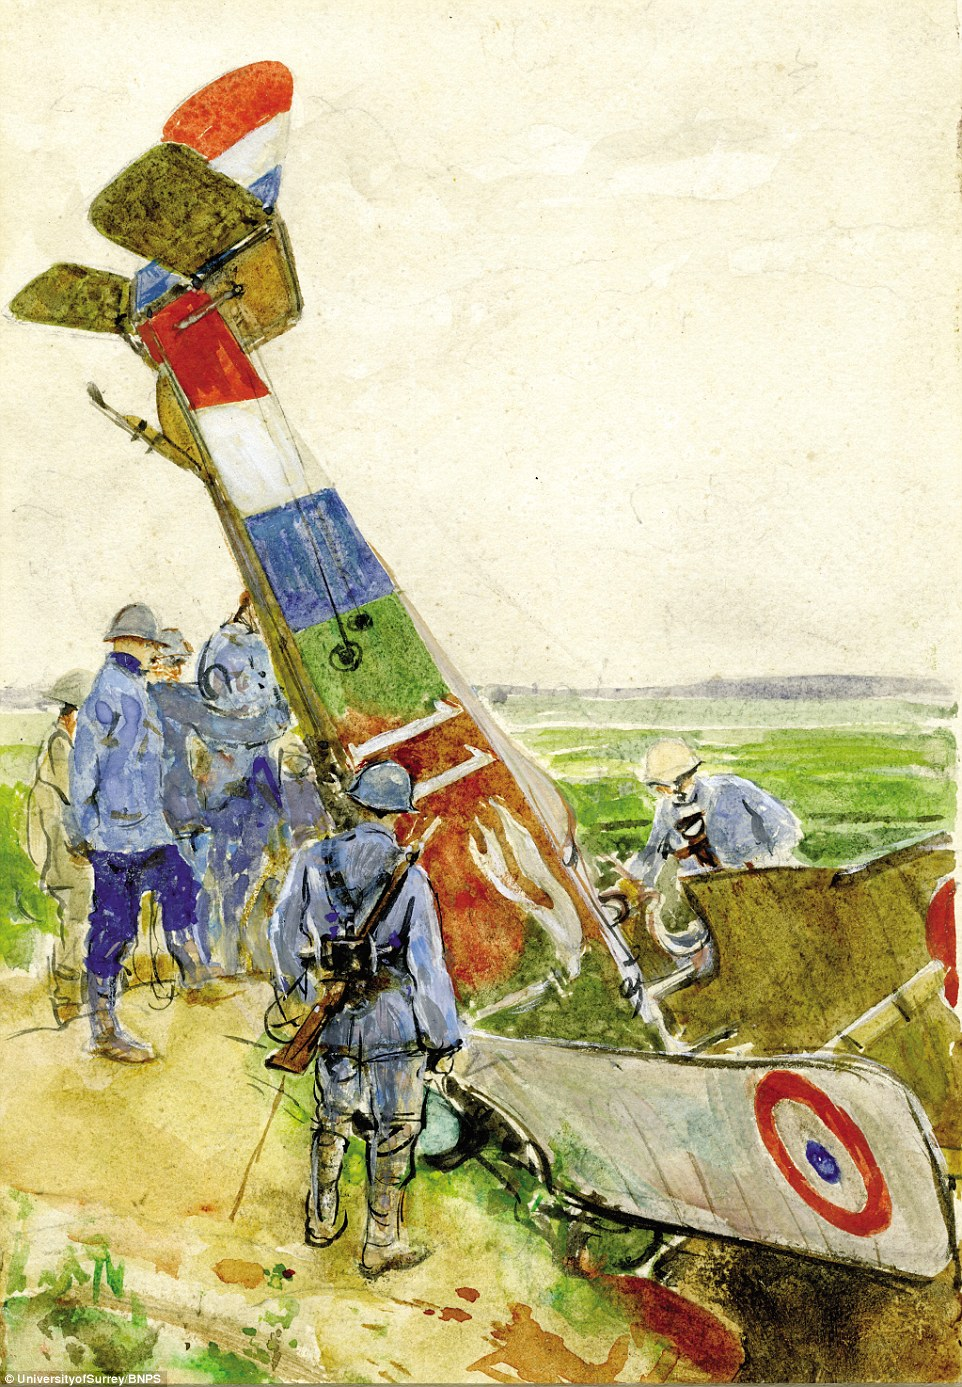 At war: Pictured are soldiers surveying a French biplane which crashed on the Somme battlefield in 1916